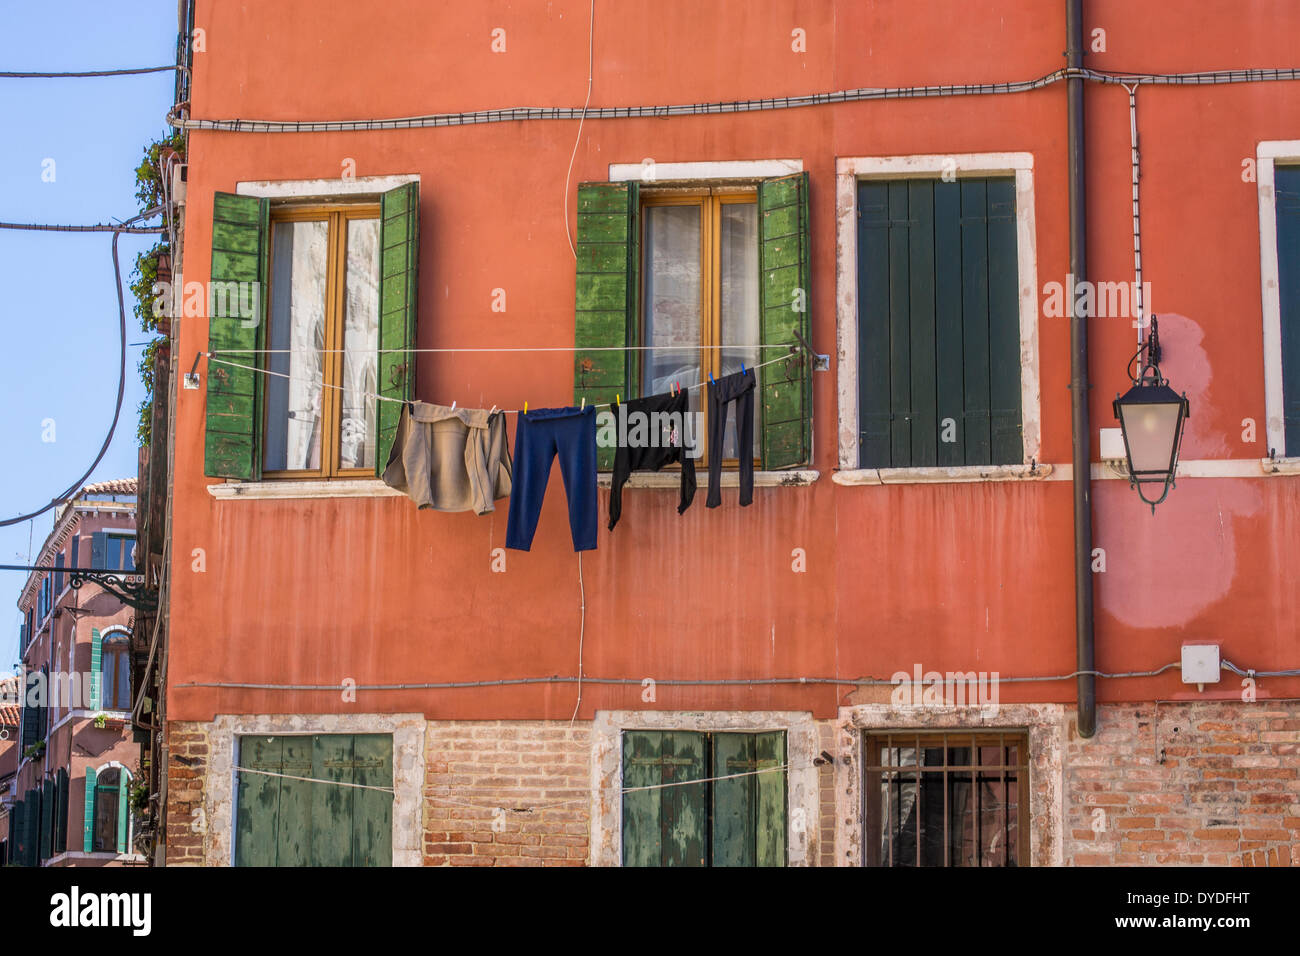 A glimpse of daily life in Venice. - Stock Image